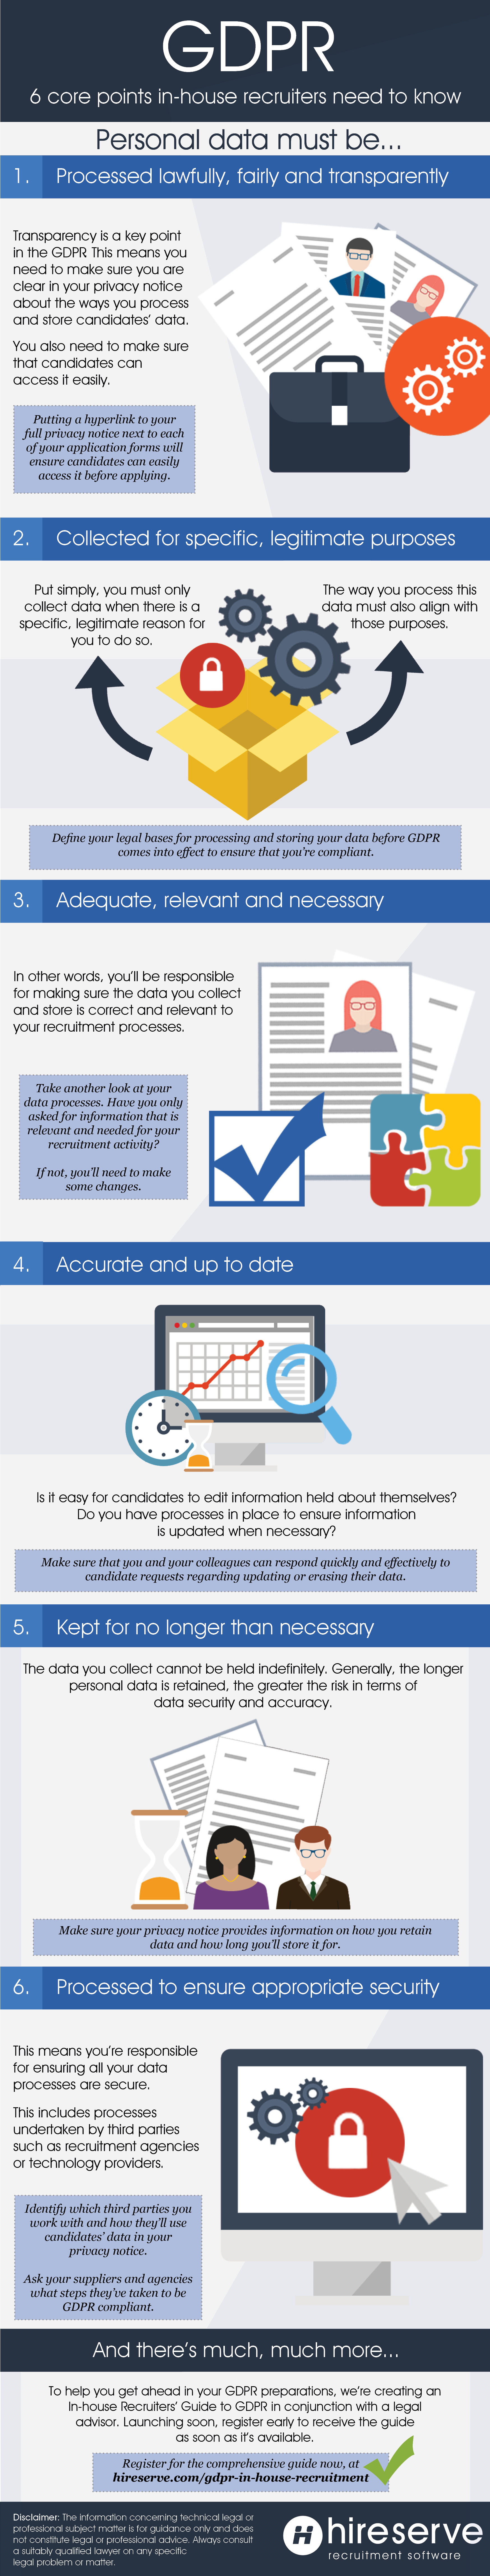 GDPR Recruitment infographic for In-house Recruiters